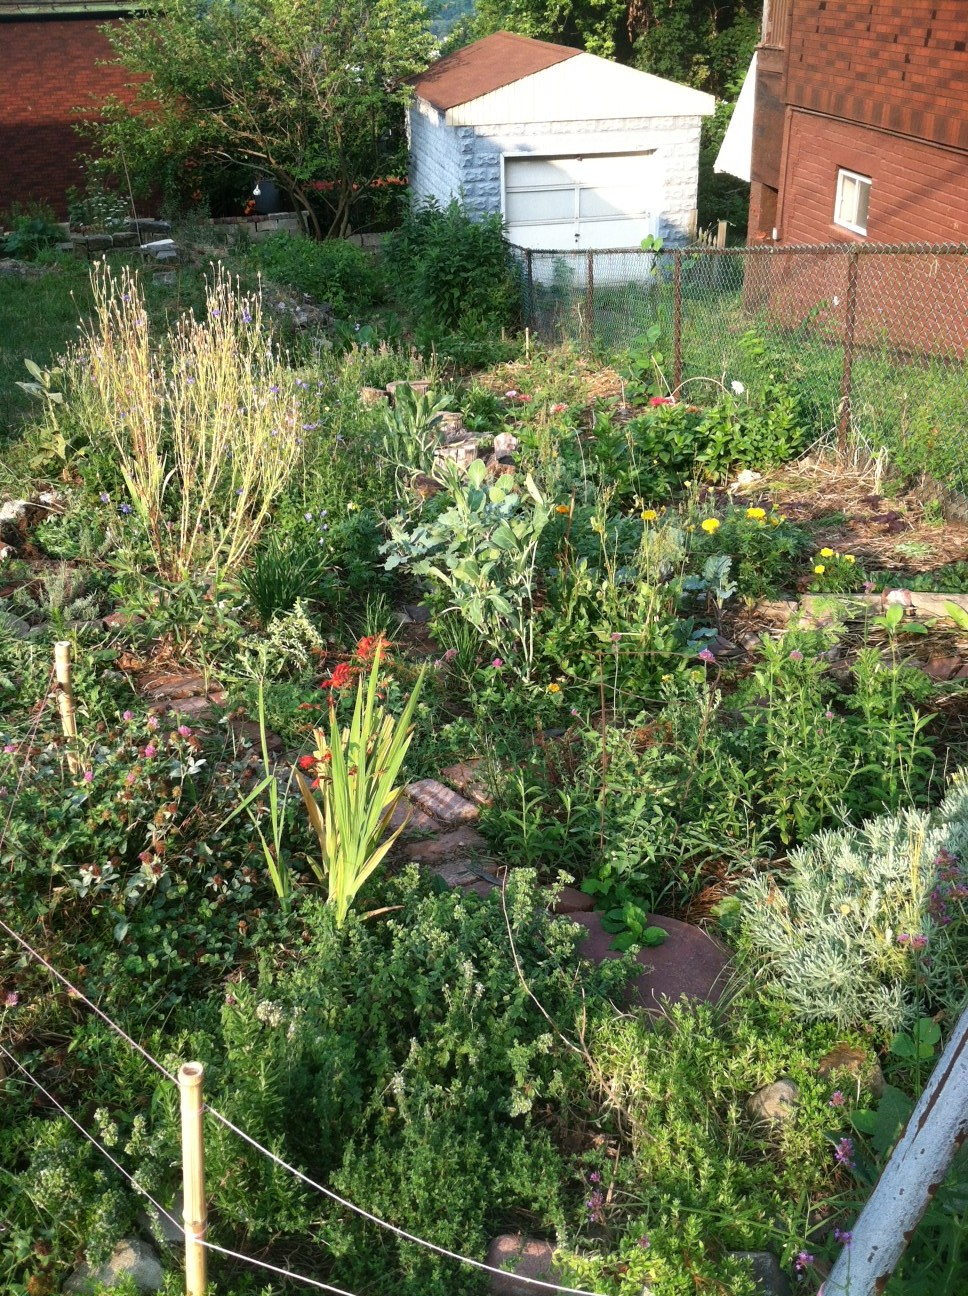 General Sisters Garden at 7am Weeding Time!